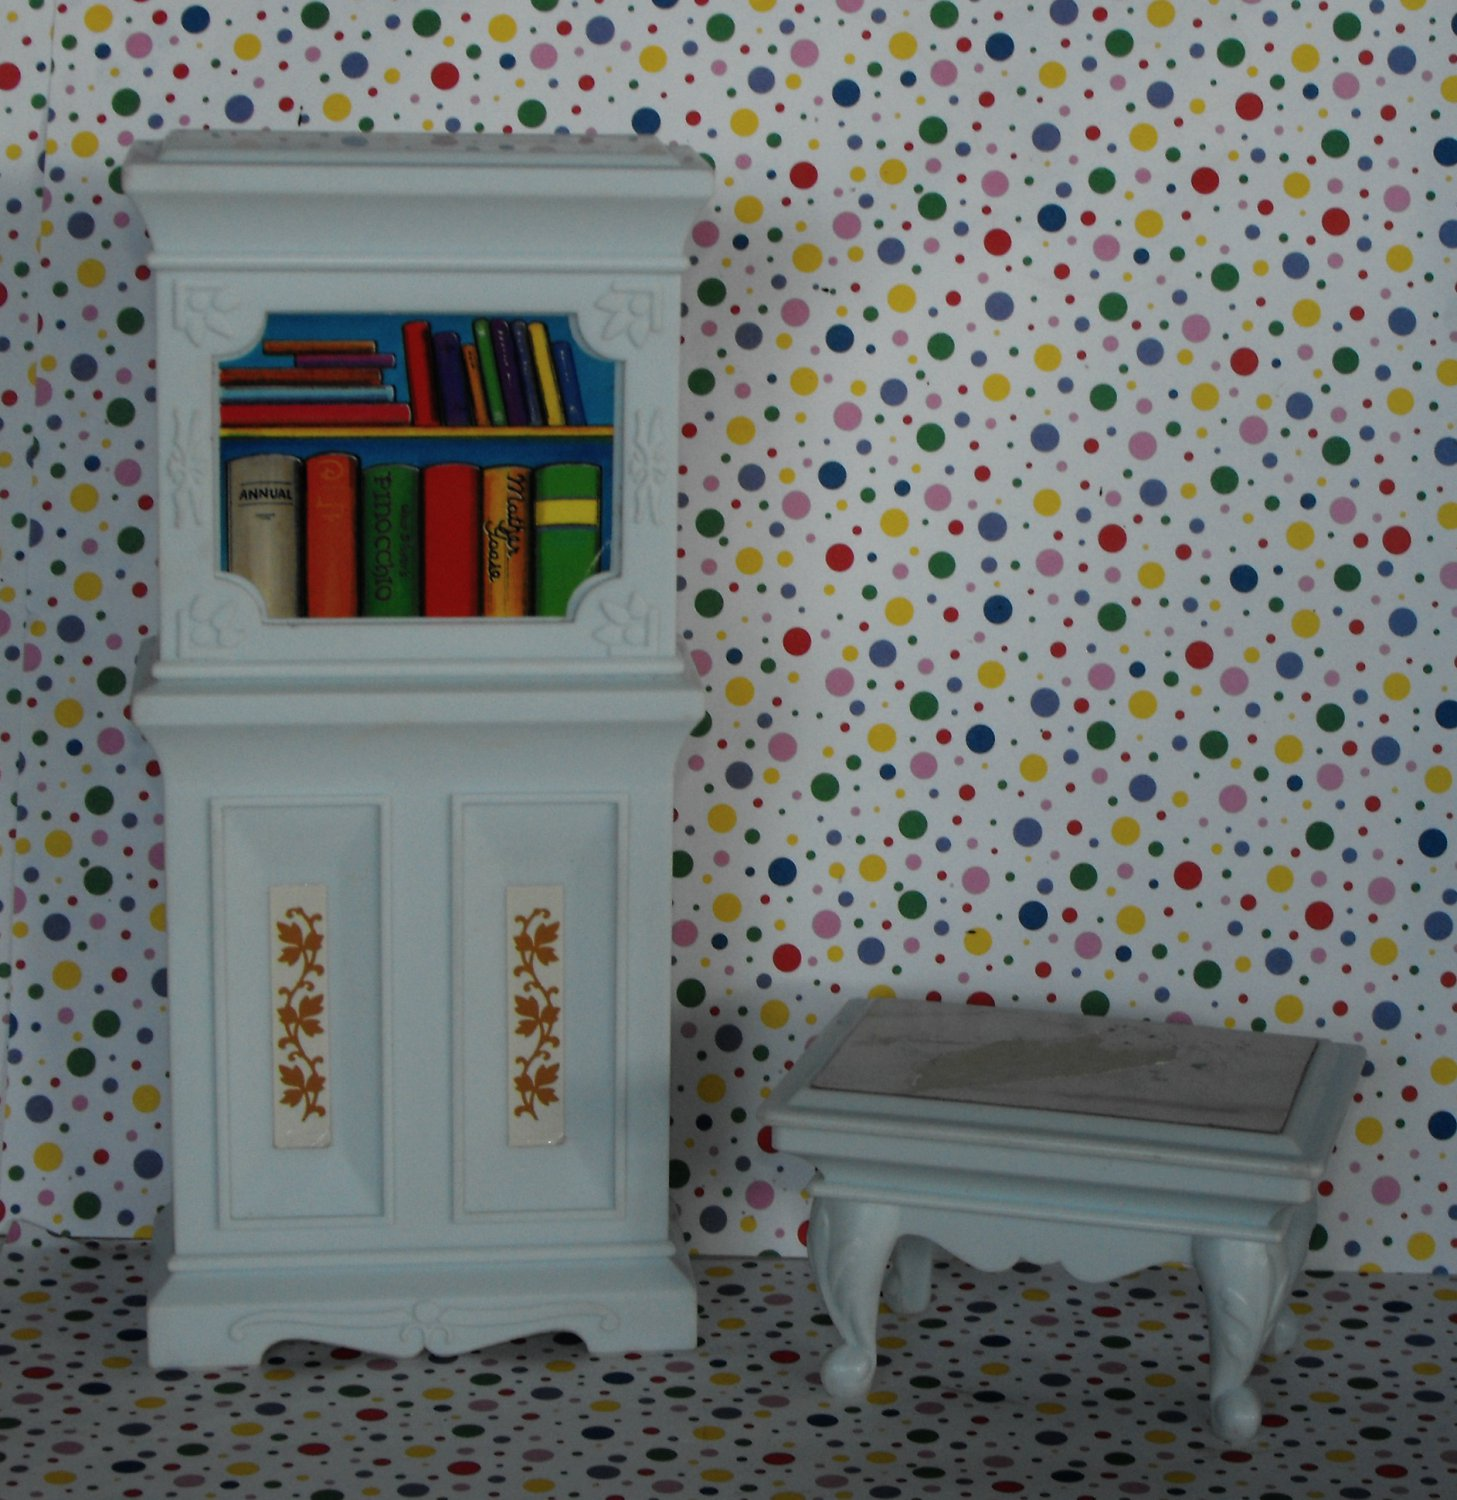 Barbie Blue Box Living Room Bookshelf and End Table Lot Dollhouse Furniture